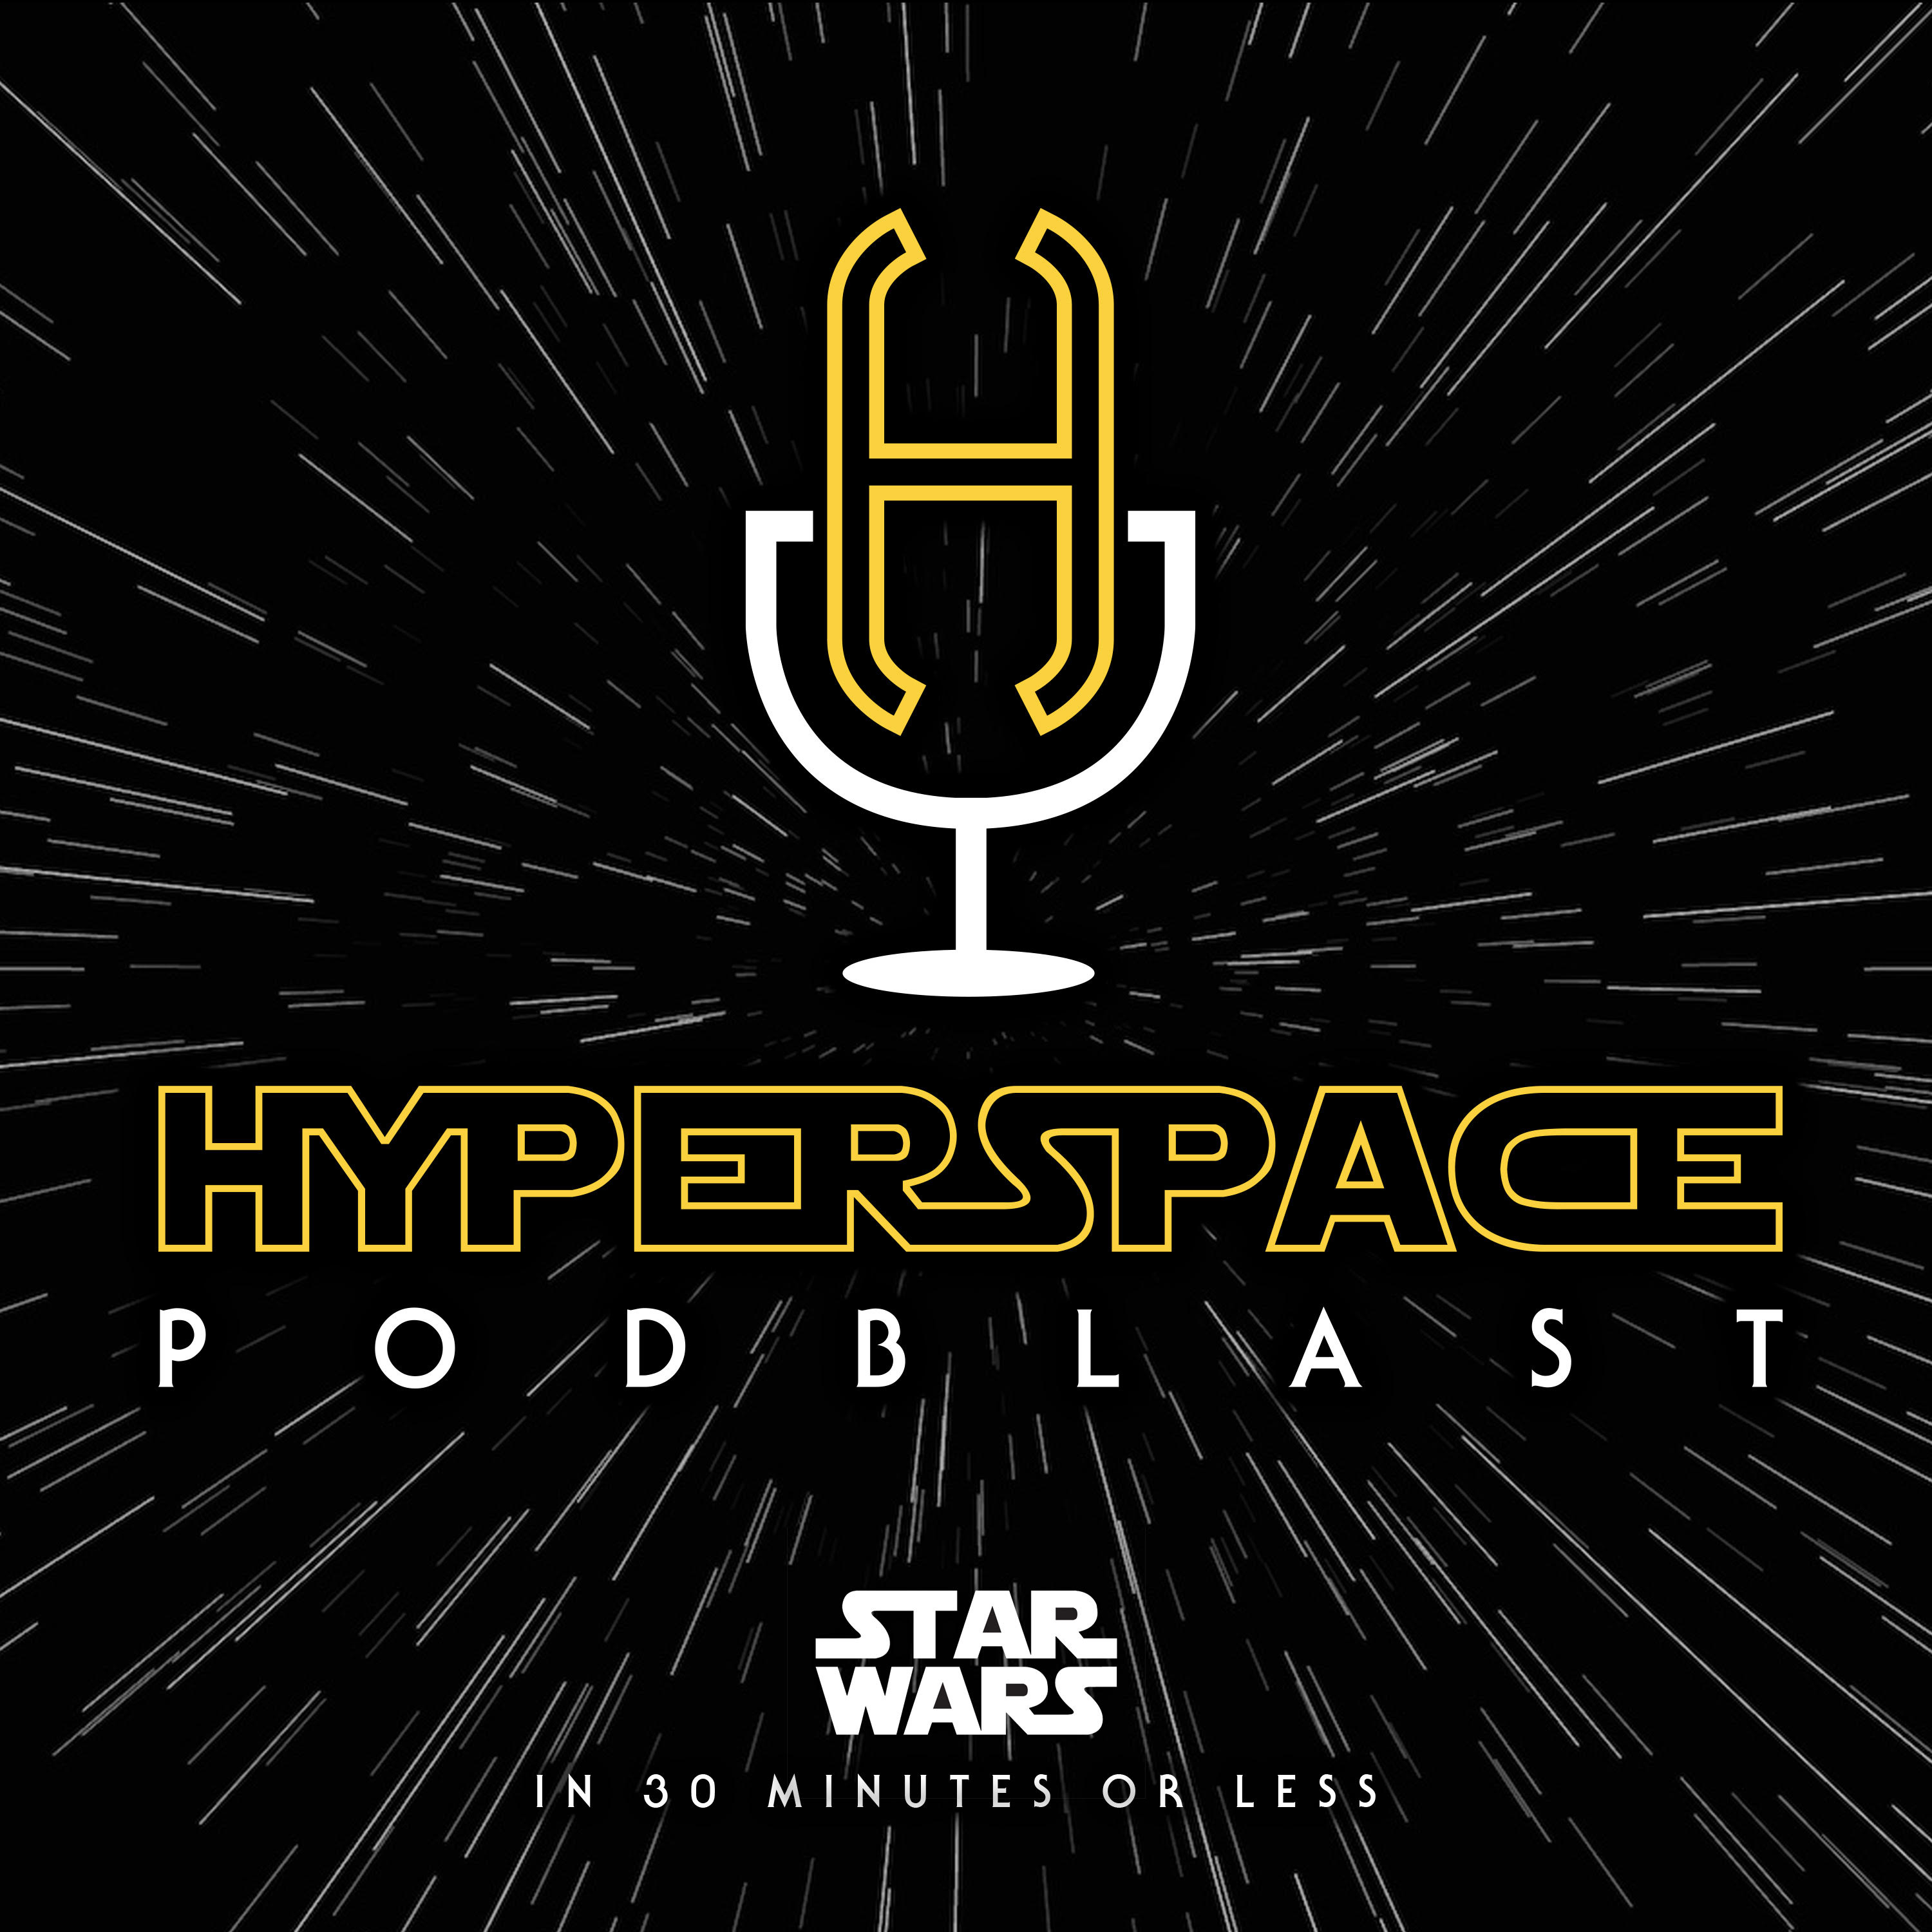 Episode #45: Star Wars & Change with Special Guest Dr. Annalise Ophelian